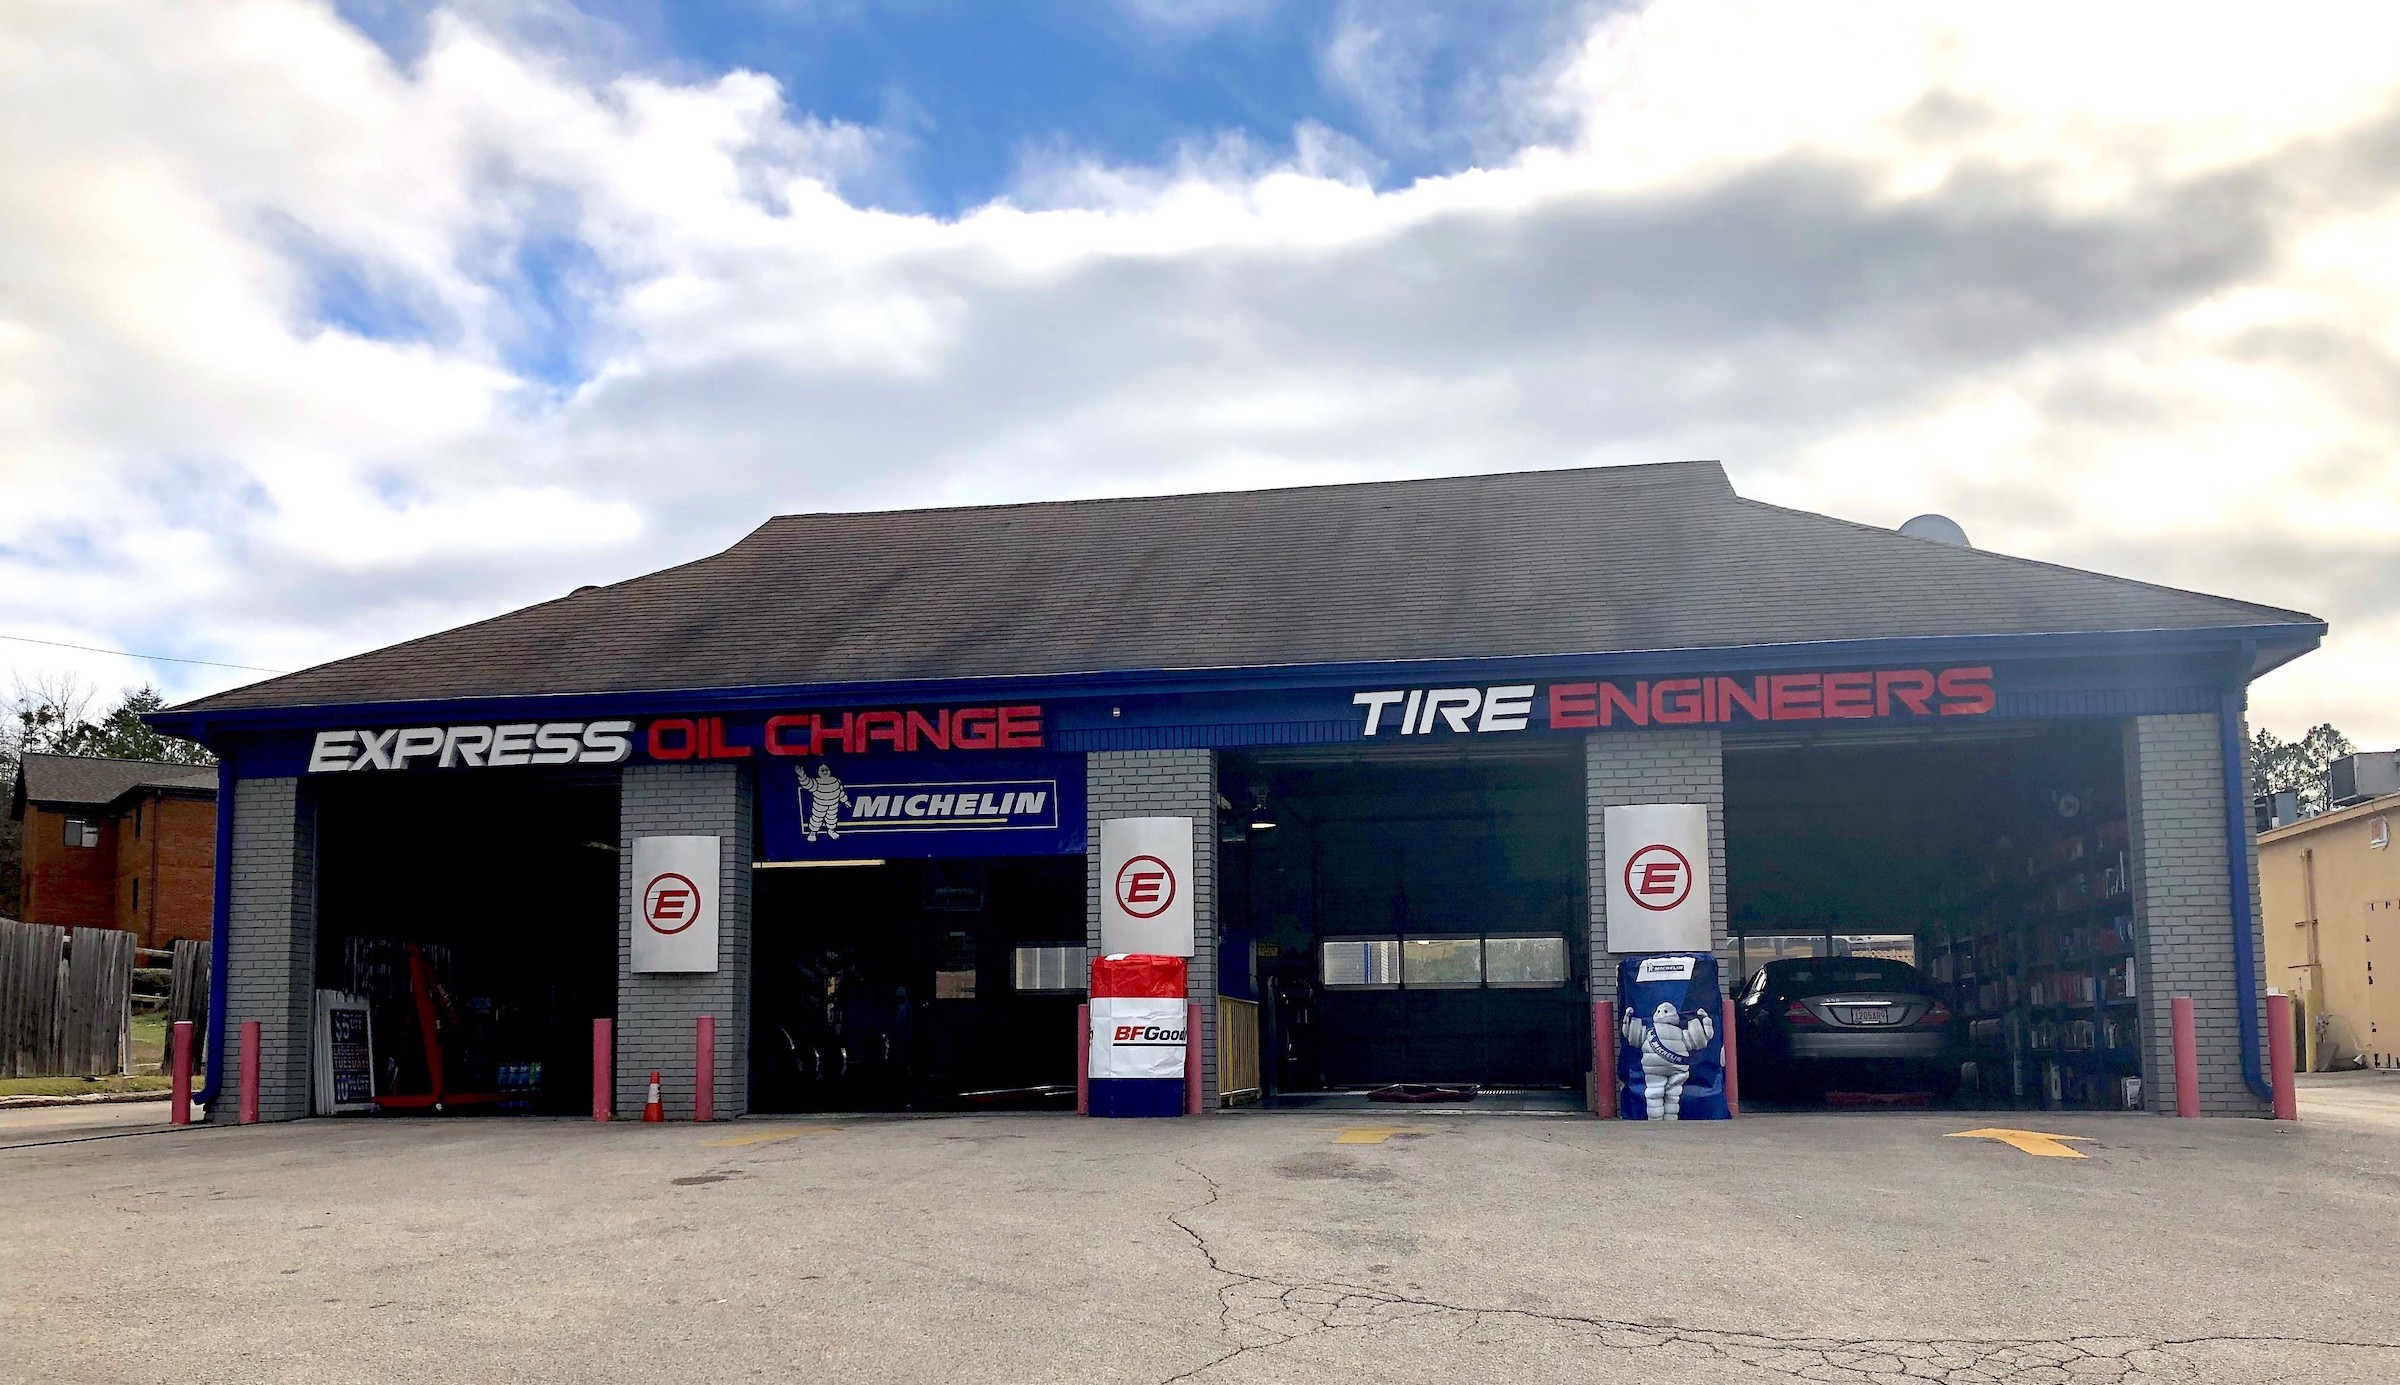 Express Oil Change & Tire Engineers Birmingham, AL - Inverness store